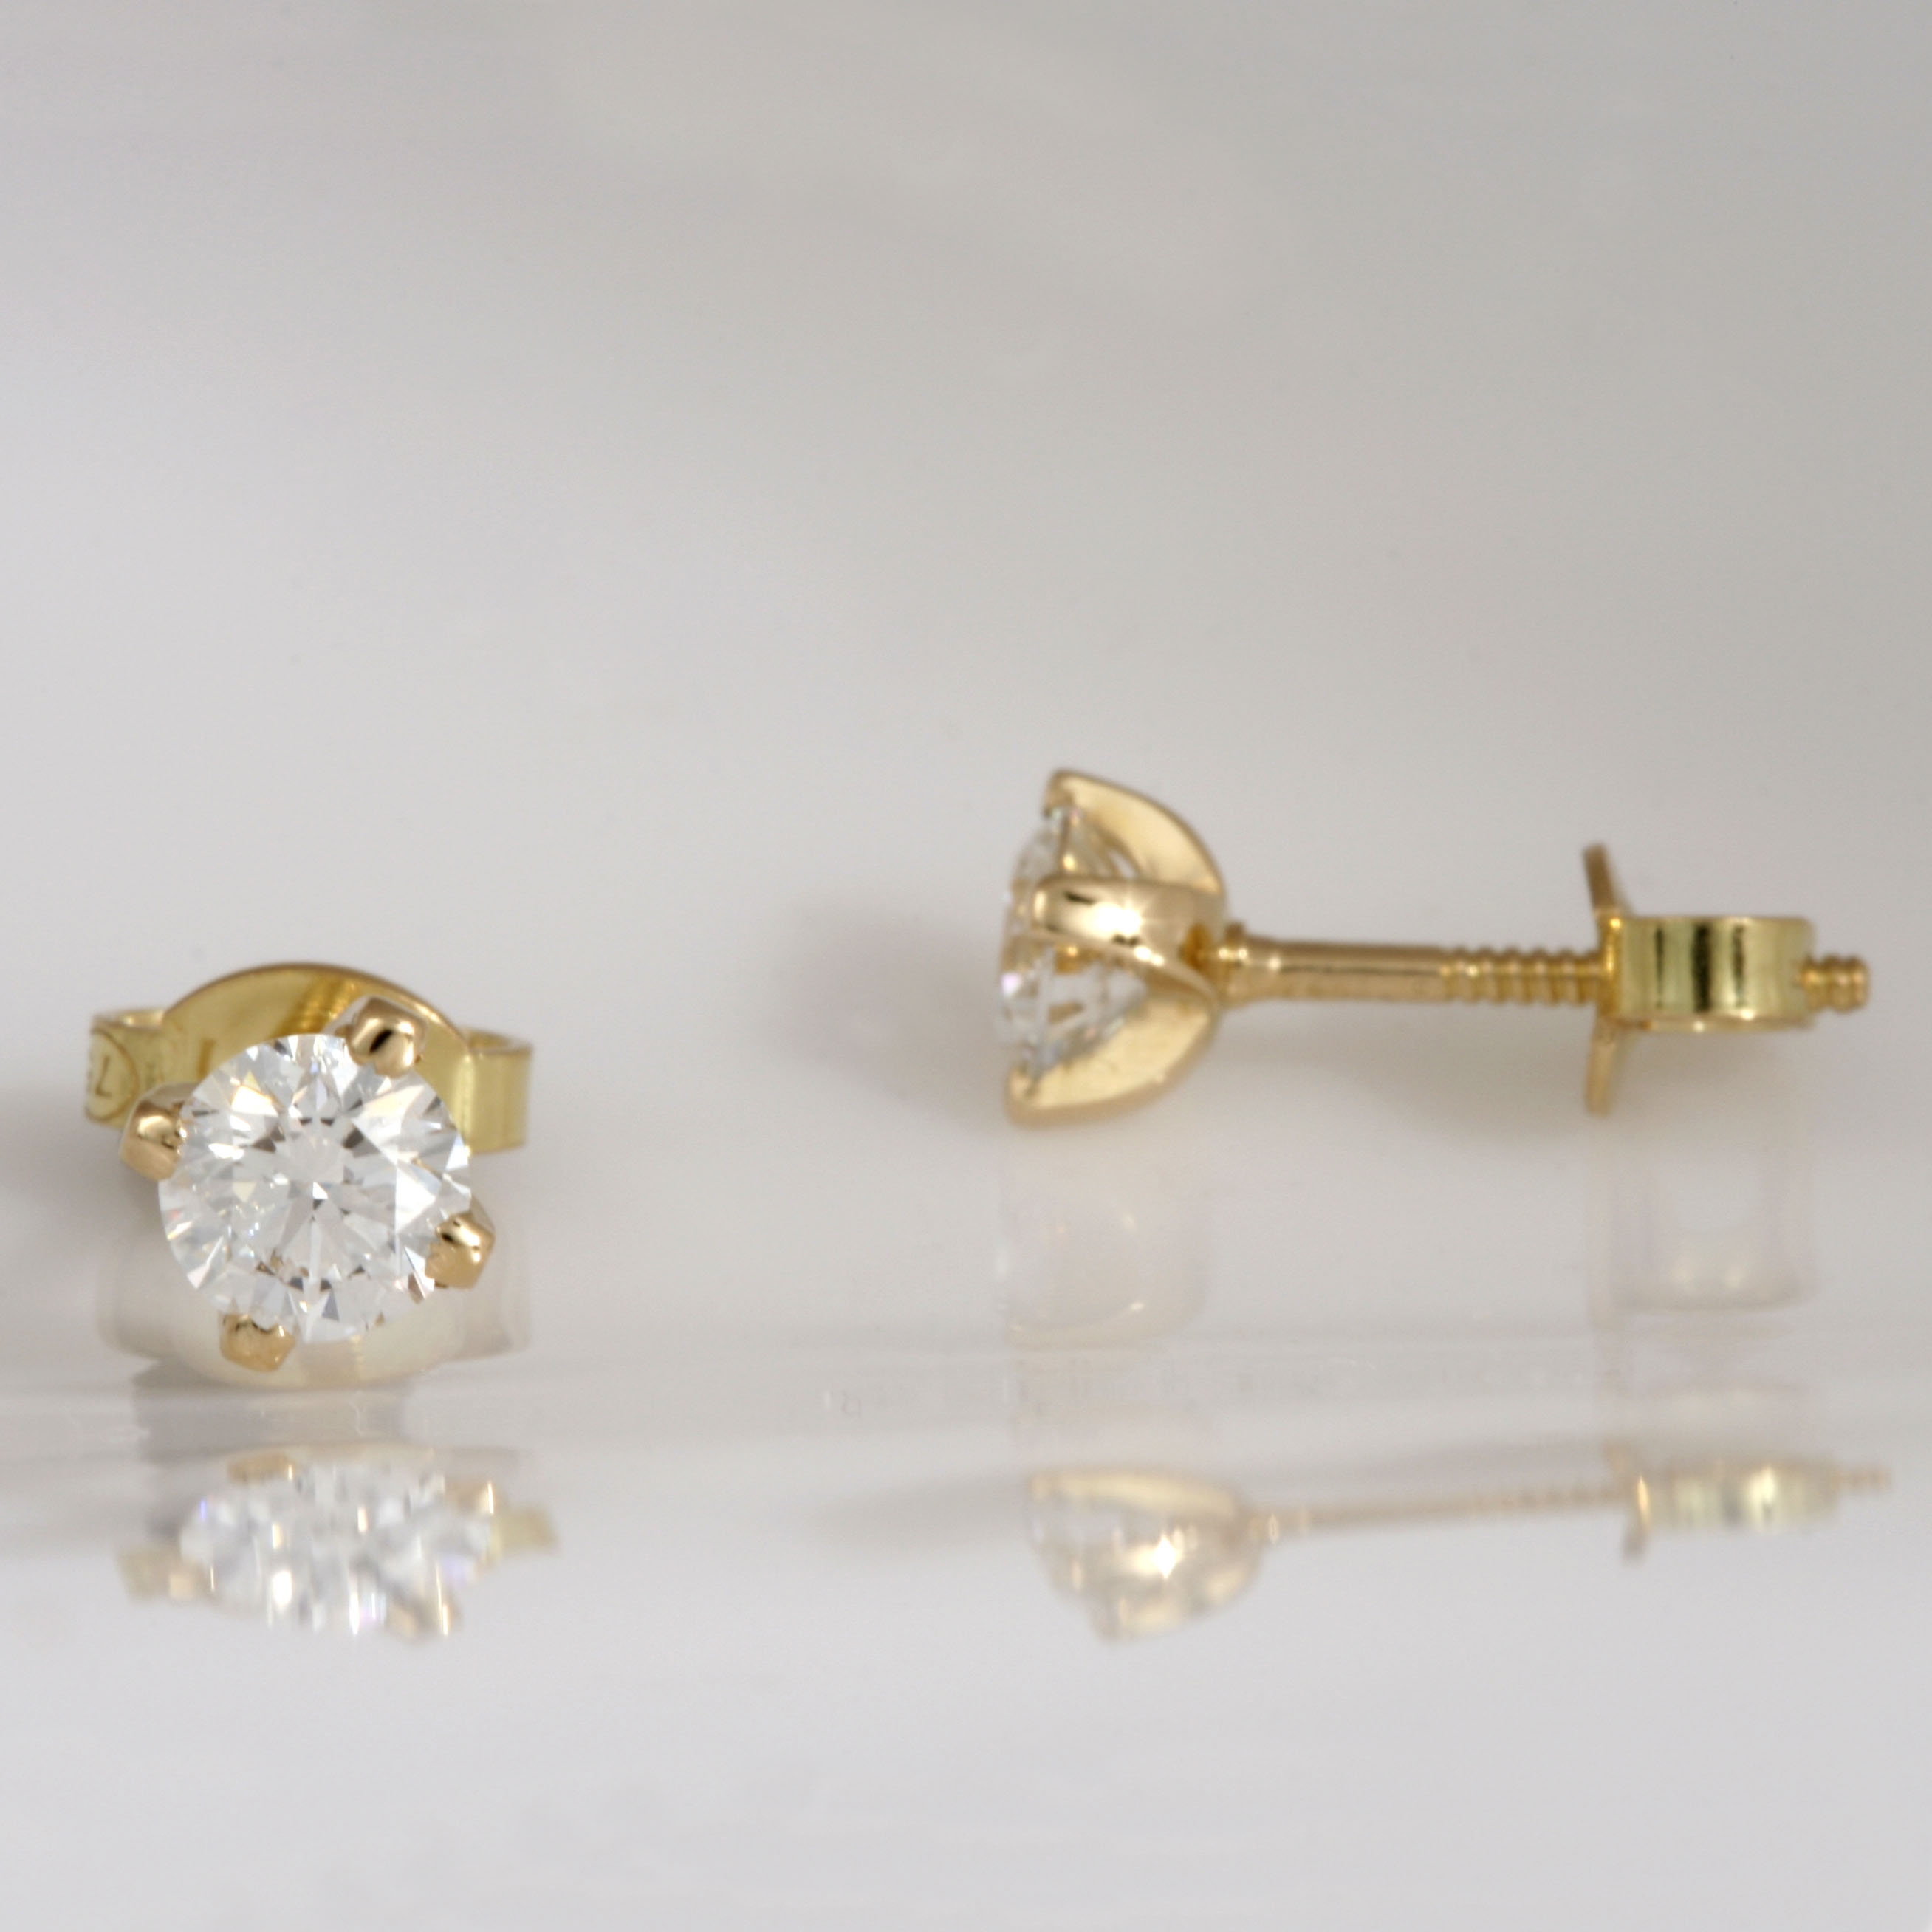 Handmade 18ct yellow gold diamond stud earrings with threaded post